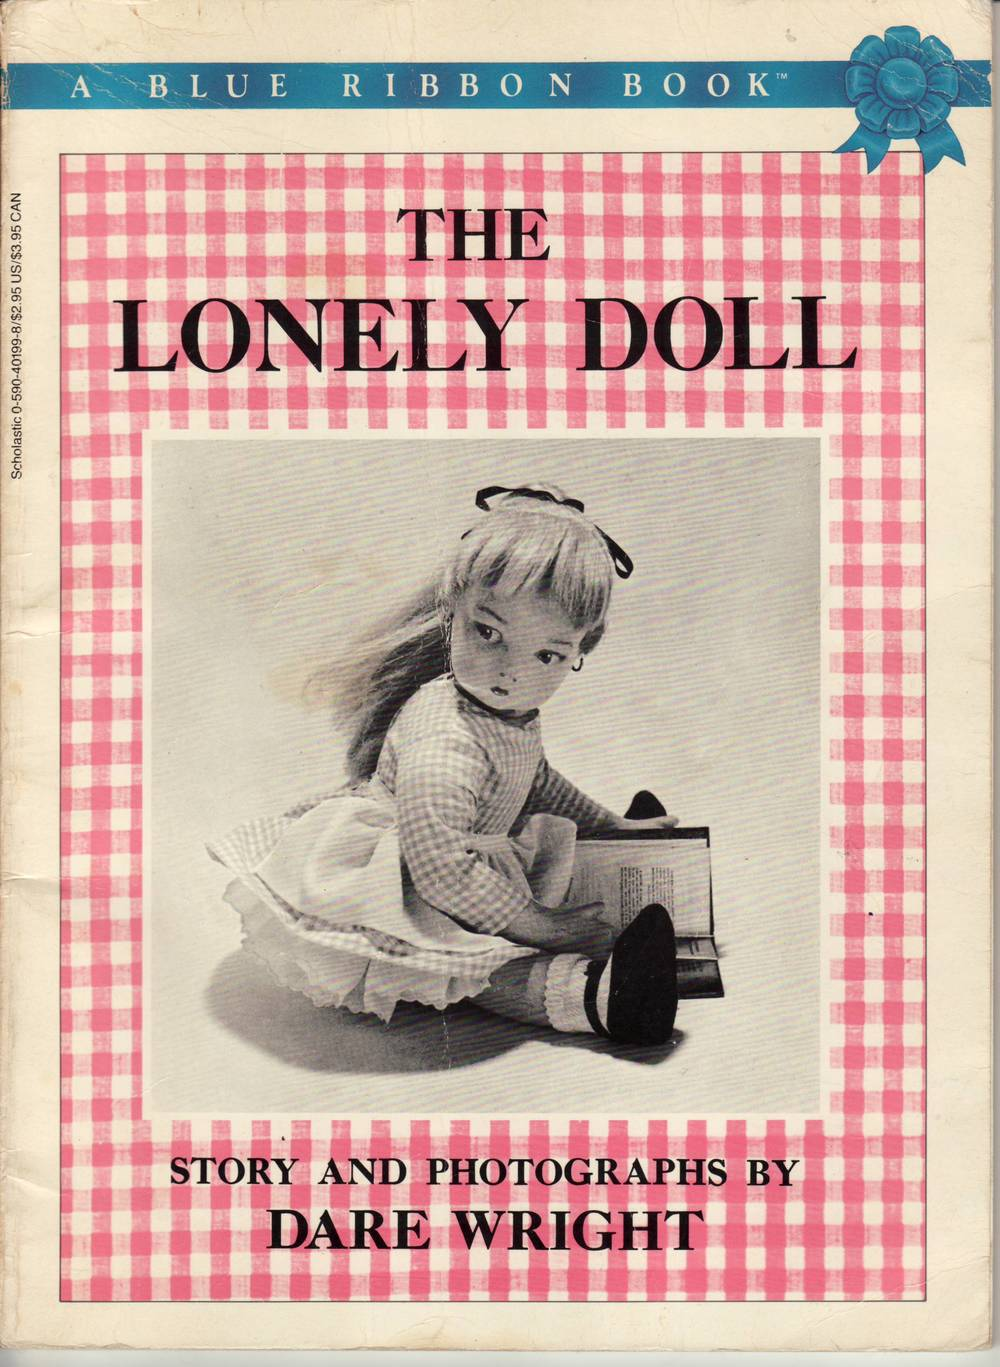 the lonely doll.JPG